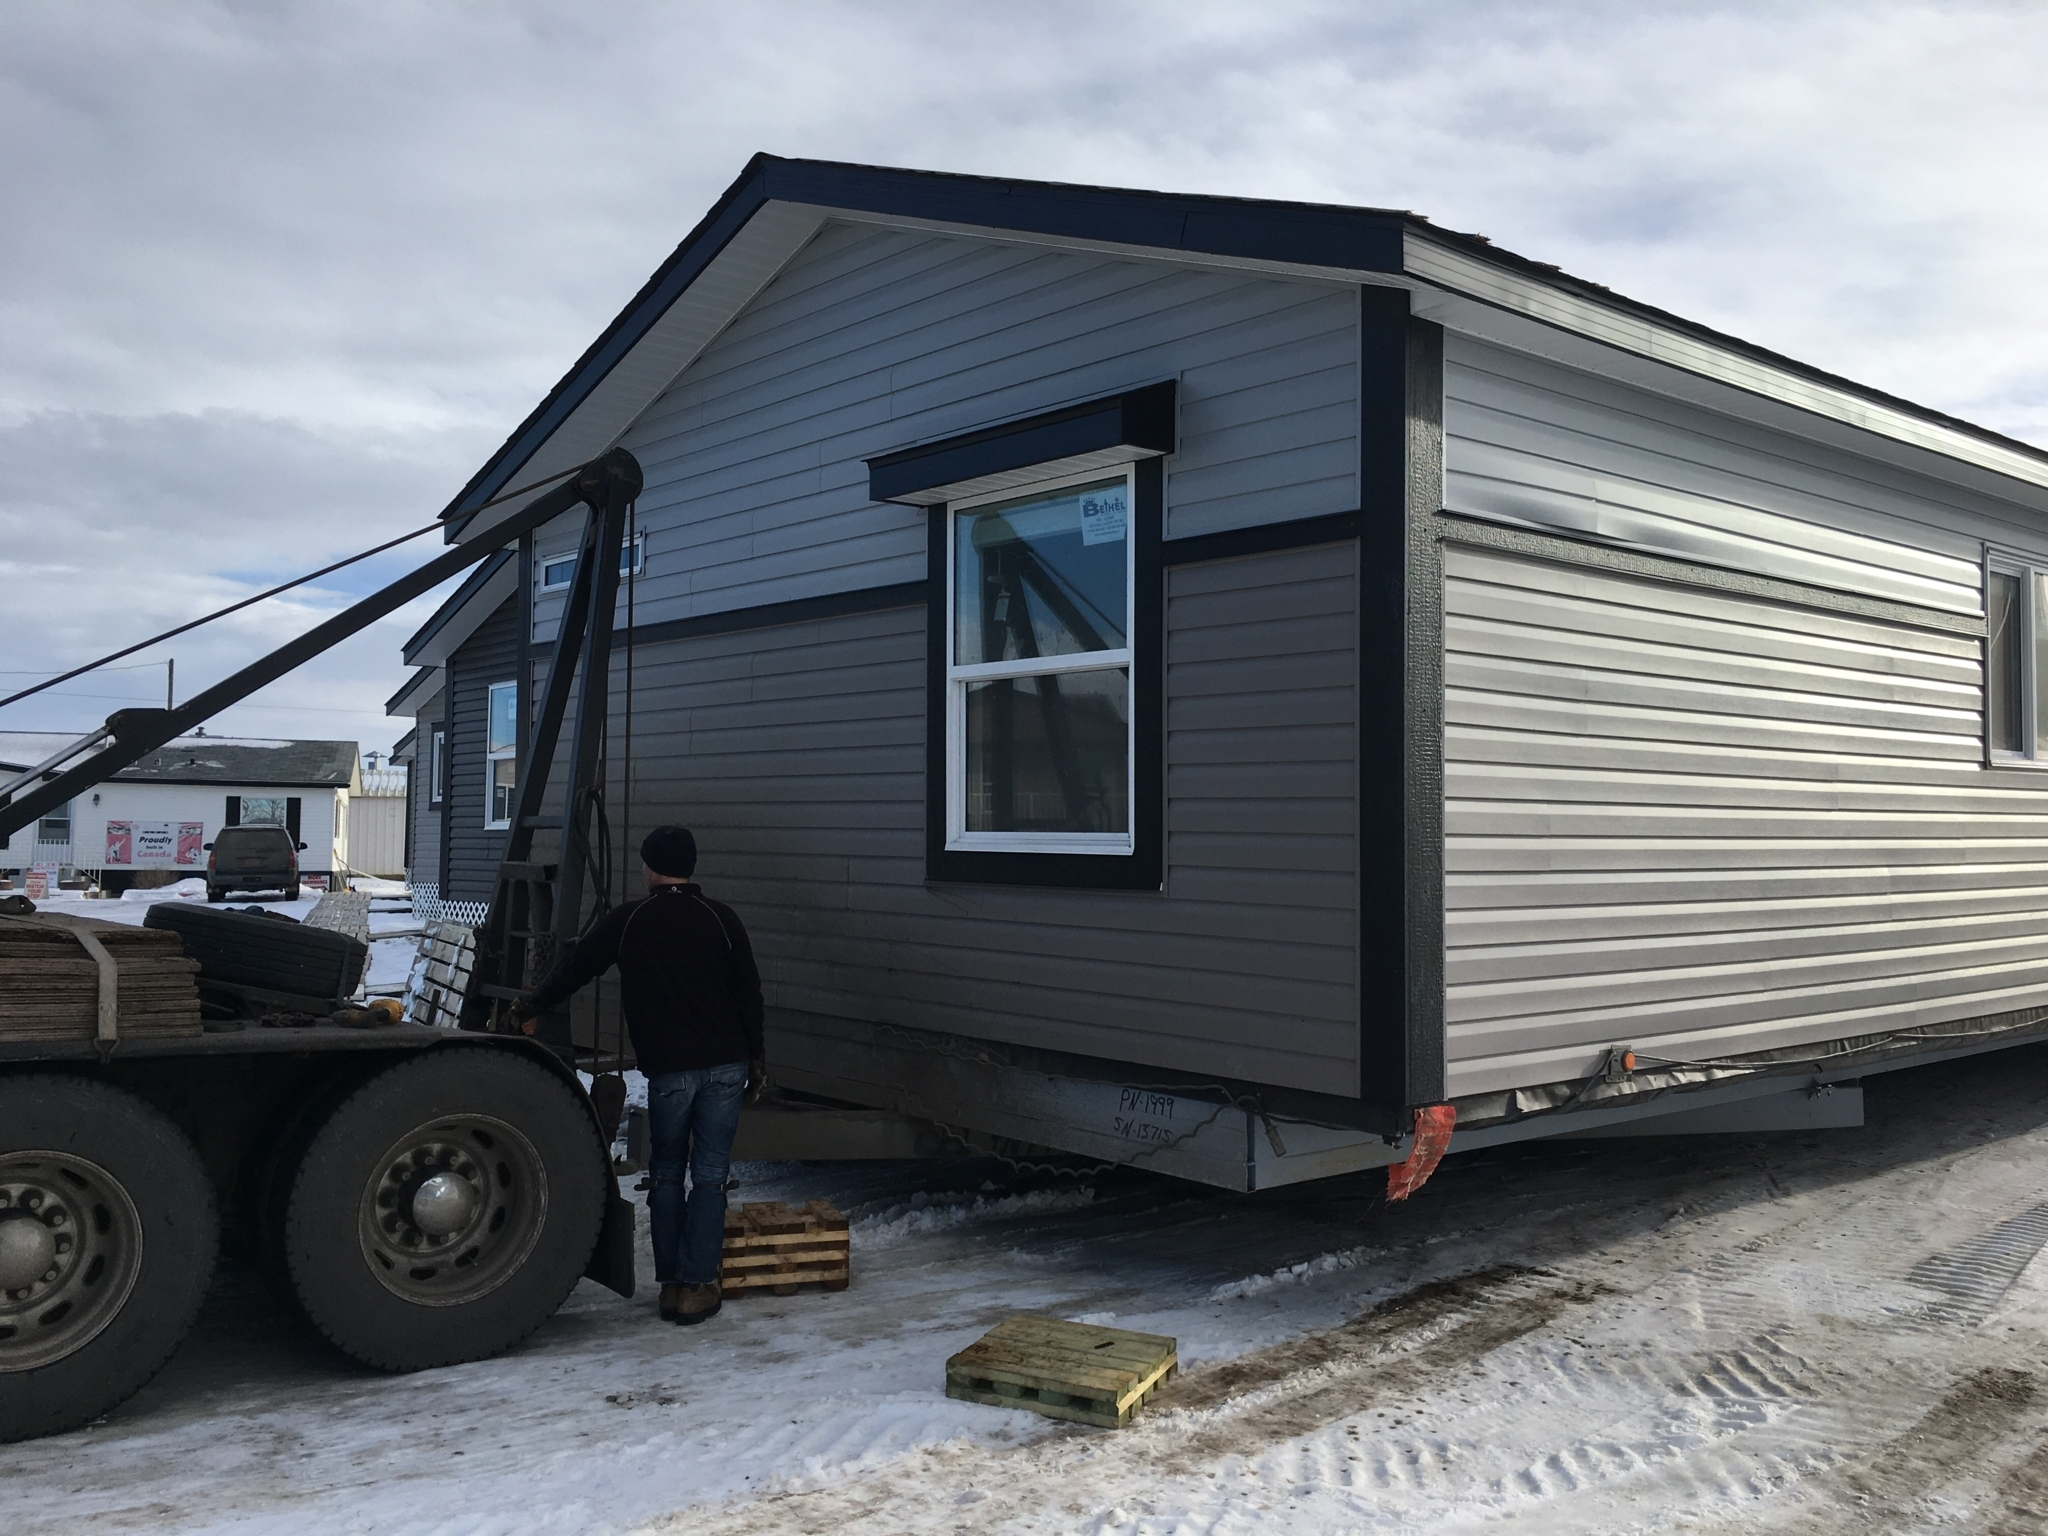 box austin movers ltd mb hours manitoba shed sheds po opening kola building bus